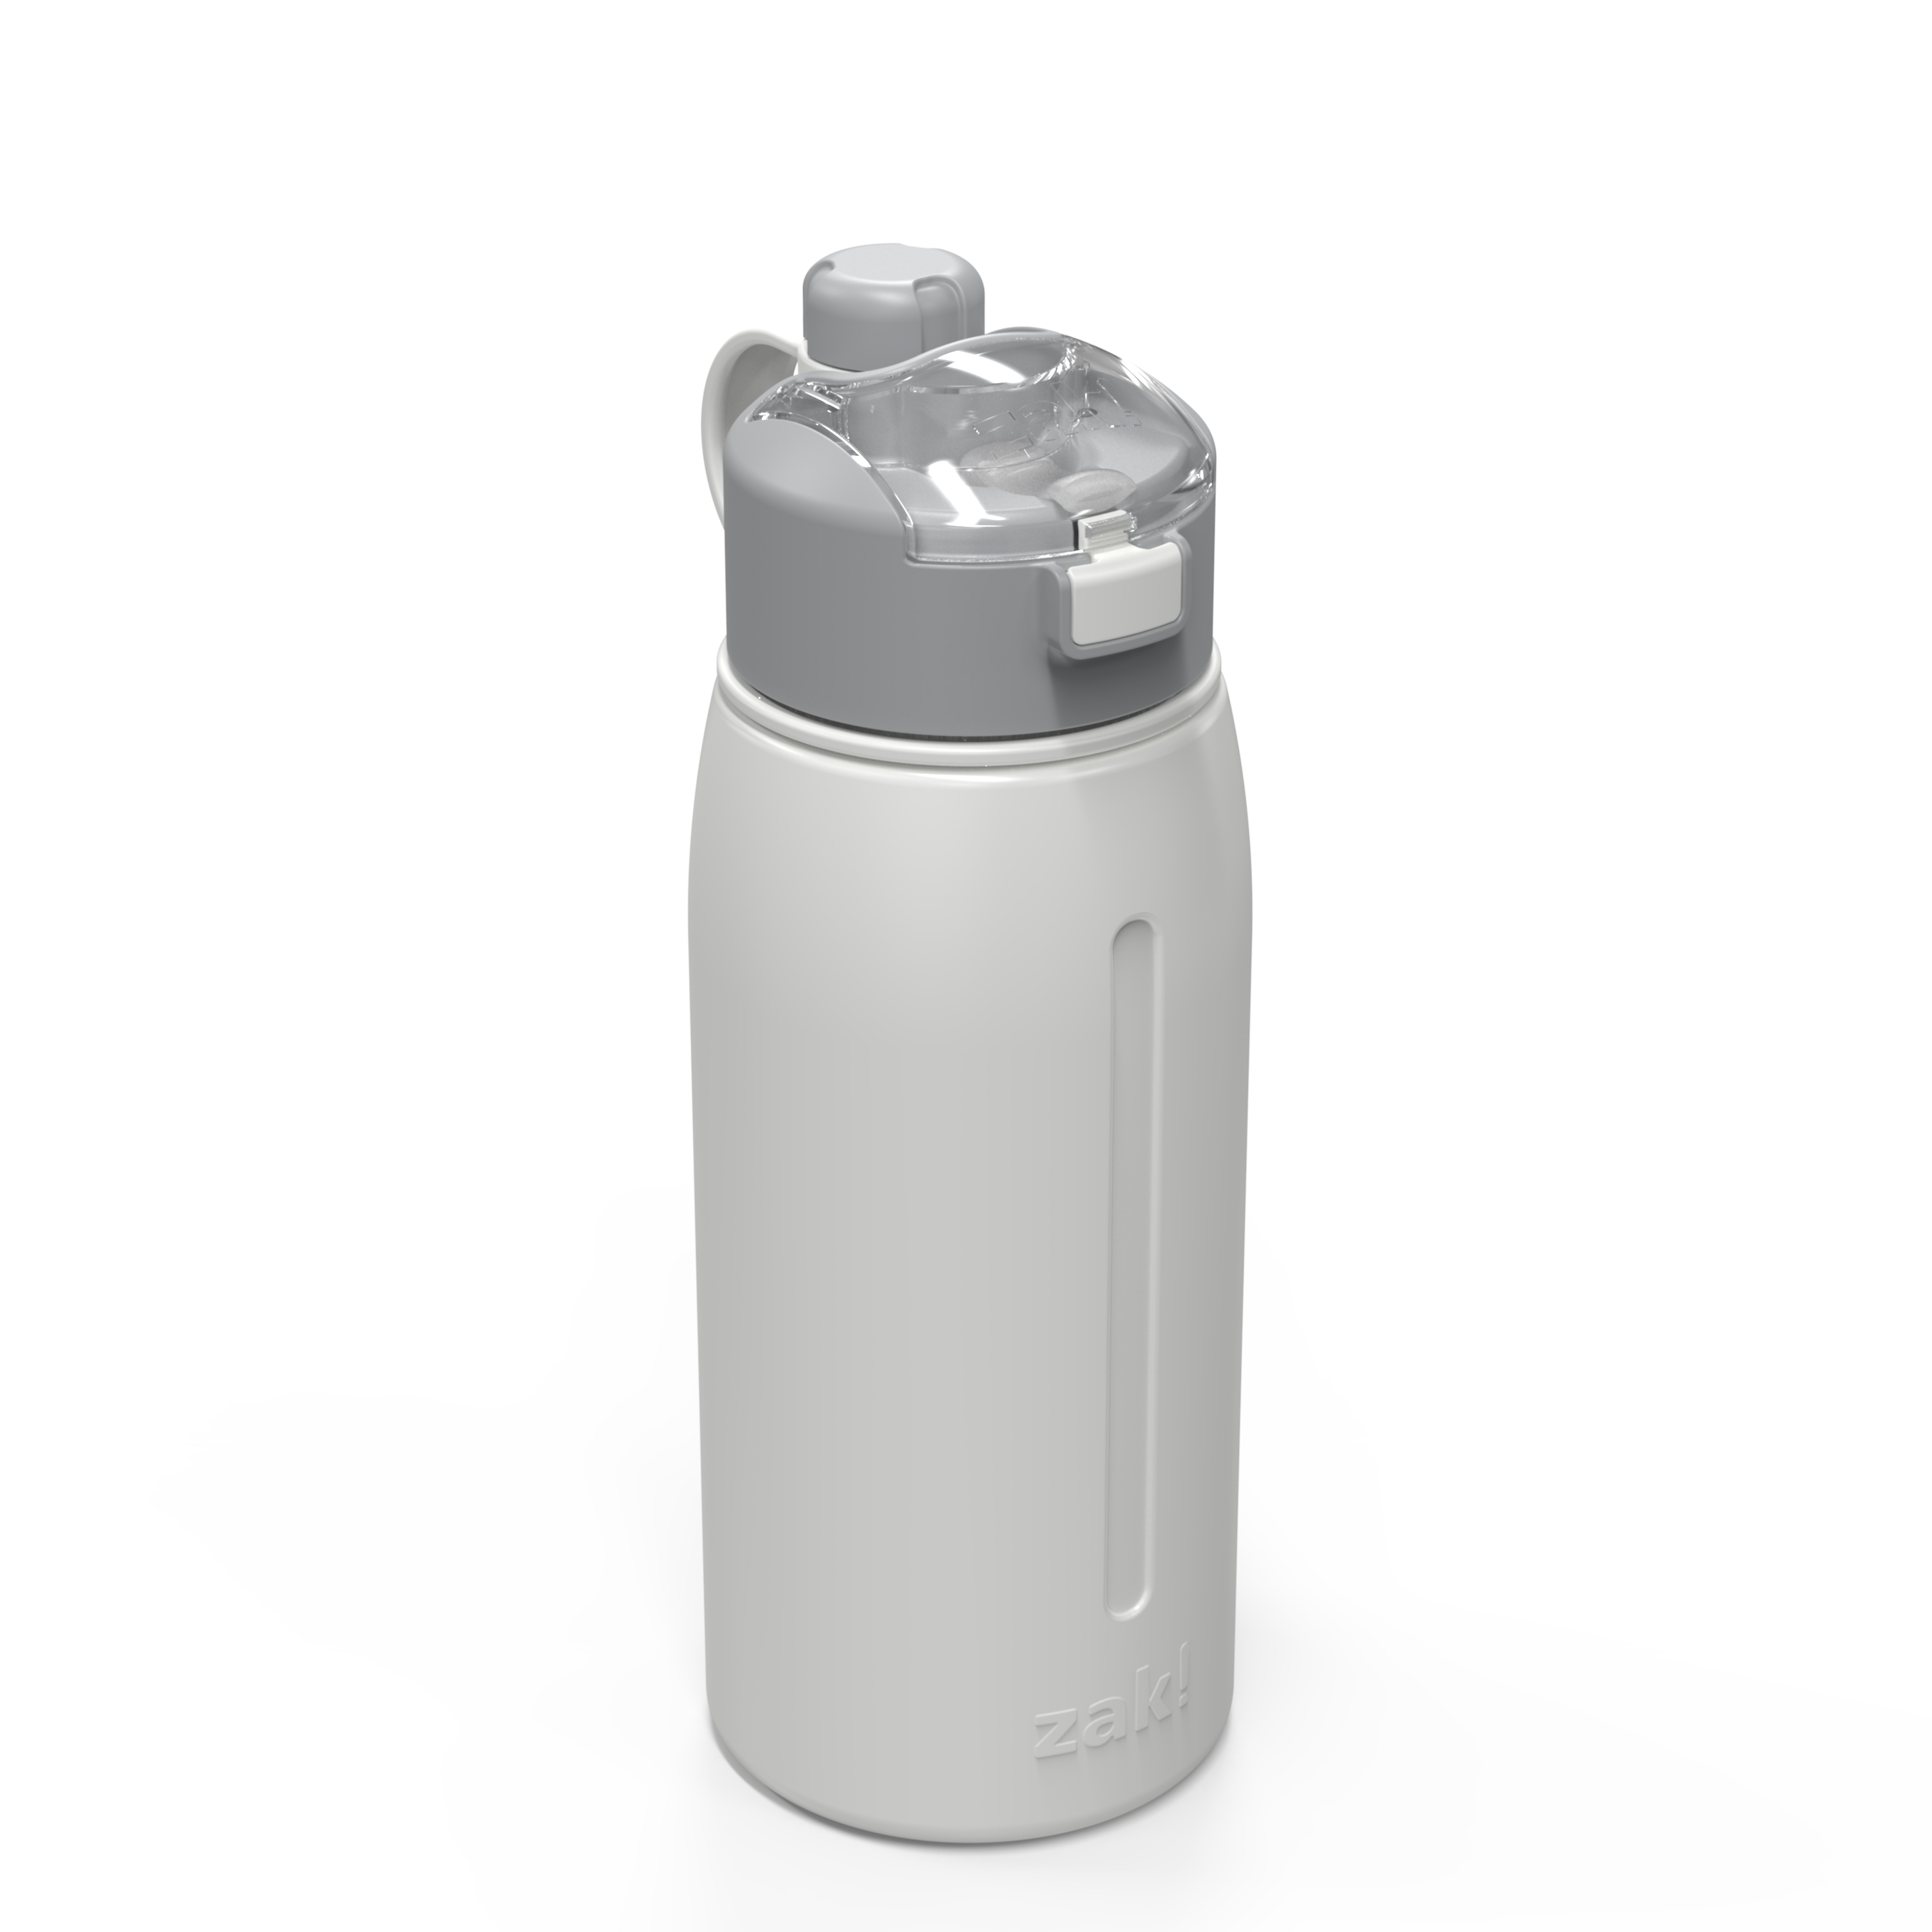 Genesis 24 ounce Vacuum Insulated Stainless Steel Tumbler, Gray slideshow image 4